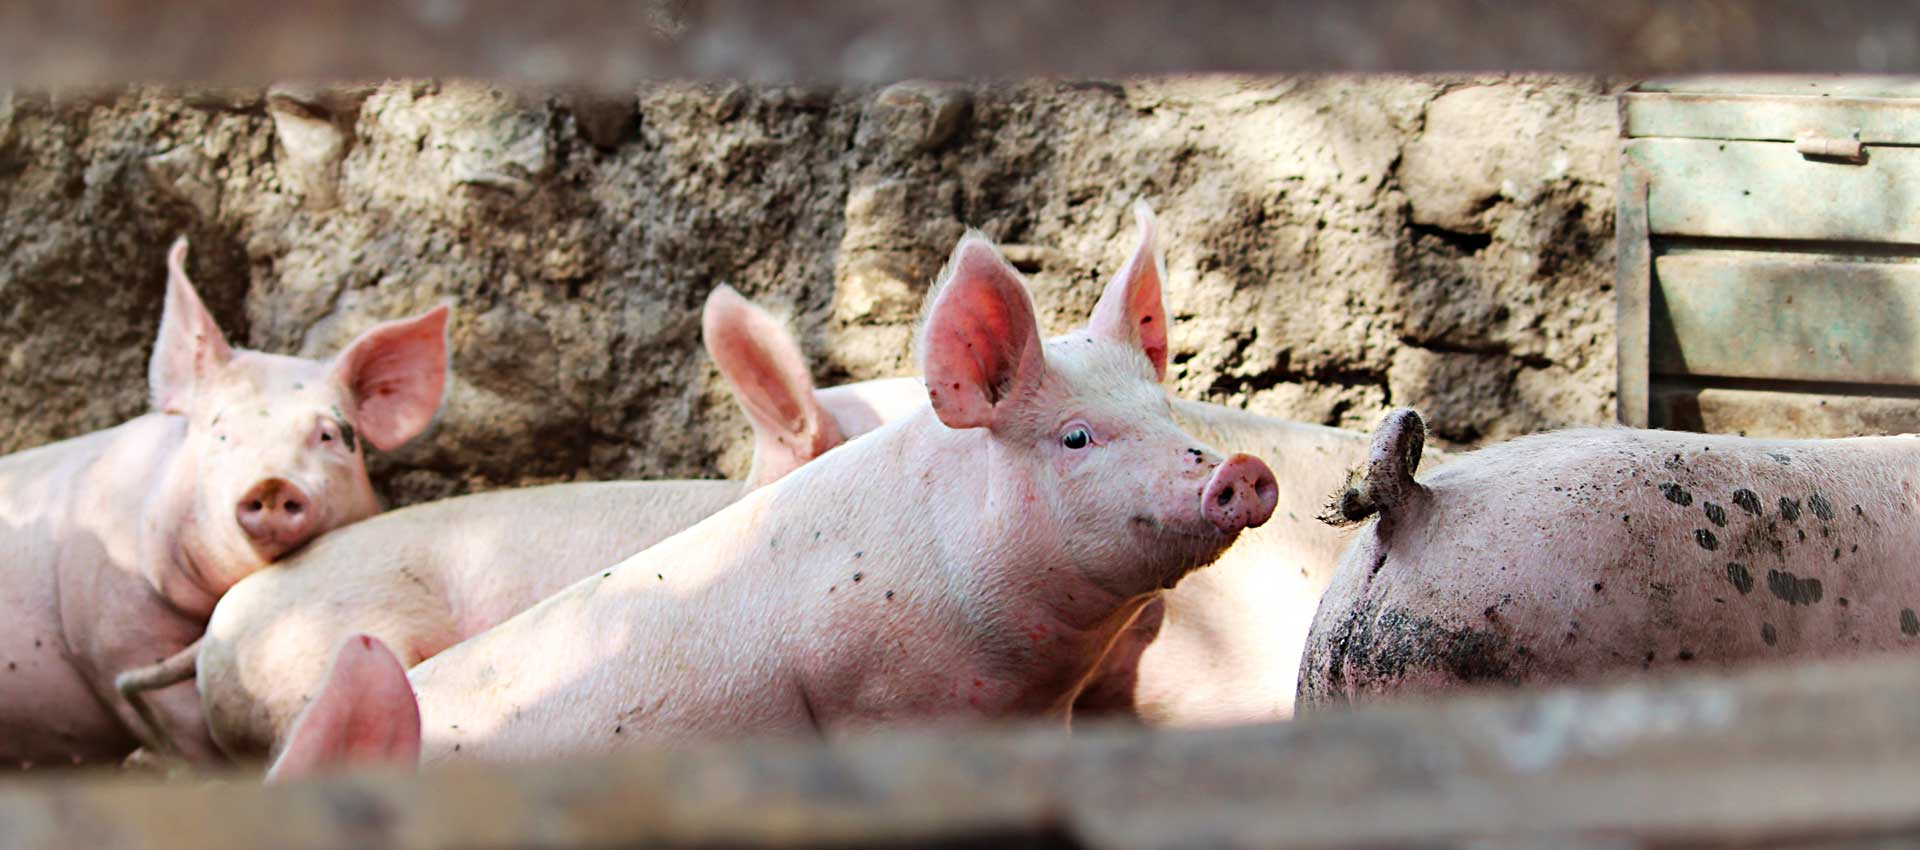 What is Swine Flu and What Are The Risks